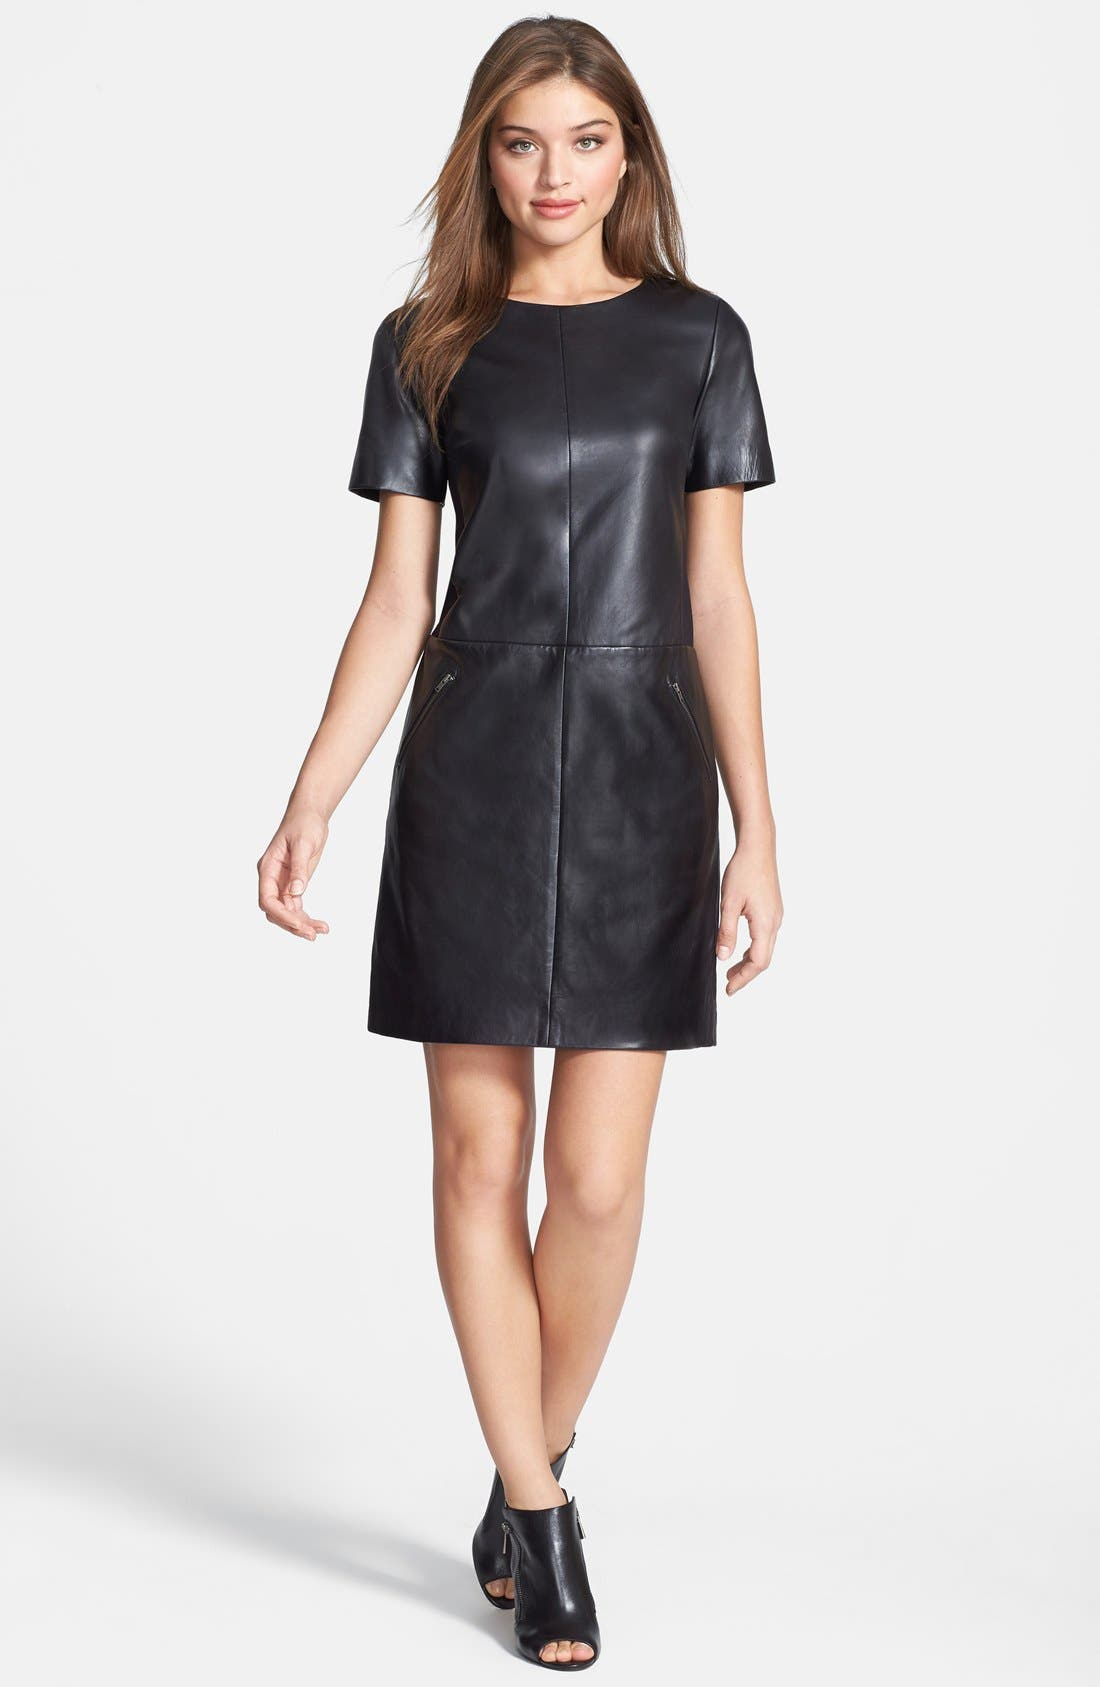 Alternate Image 1 Selected - Halogen® Leather & Ponte Knit Shift Dress (Regular & Petite)